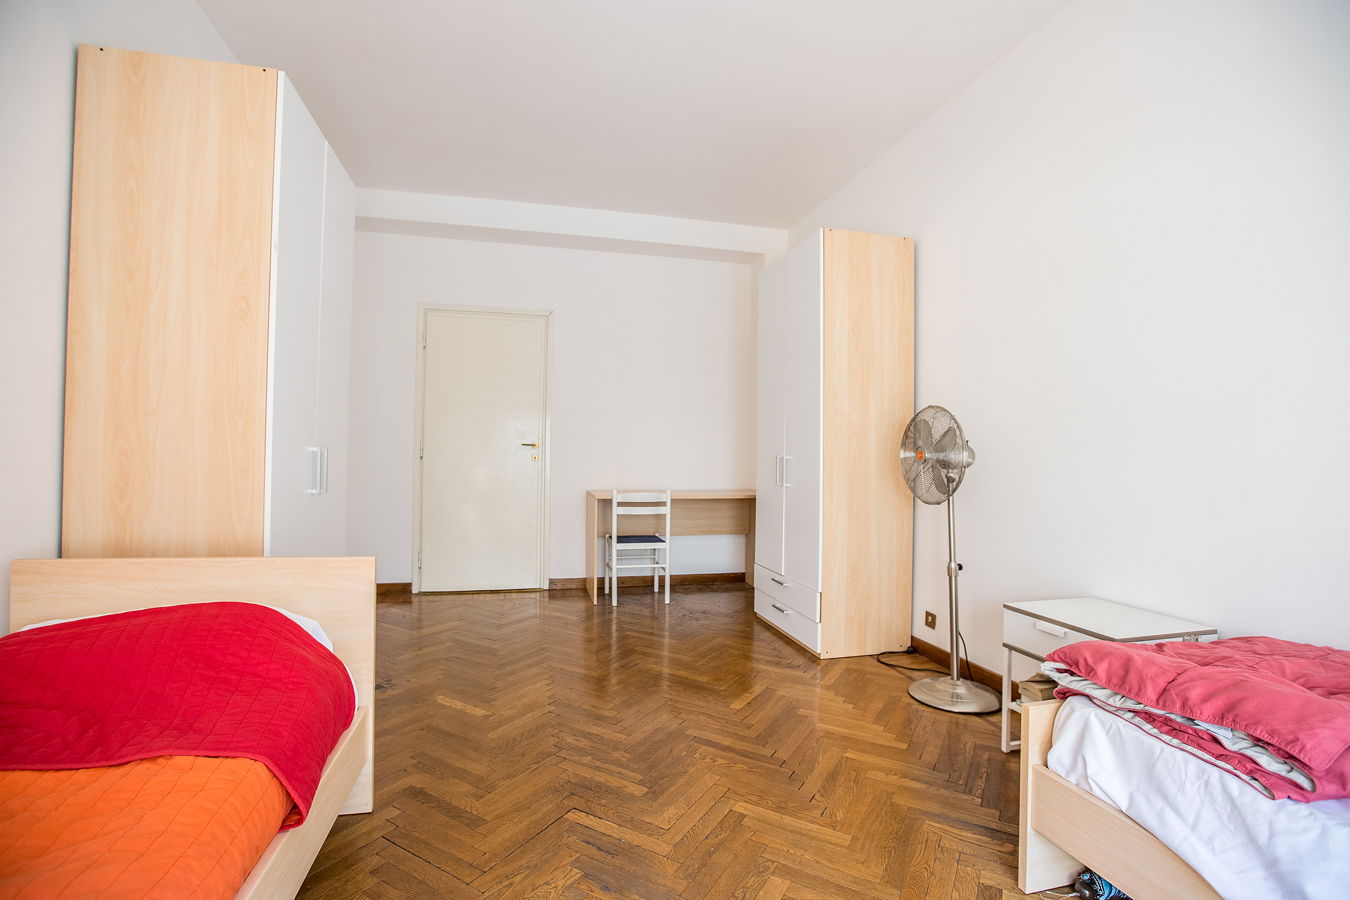 Student Accomodation for rent in double room in Via Ruggero Boscovich, 17, in Milano, Italy